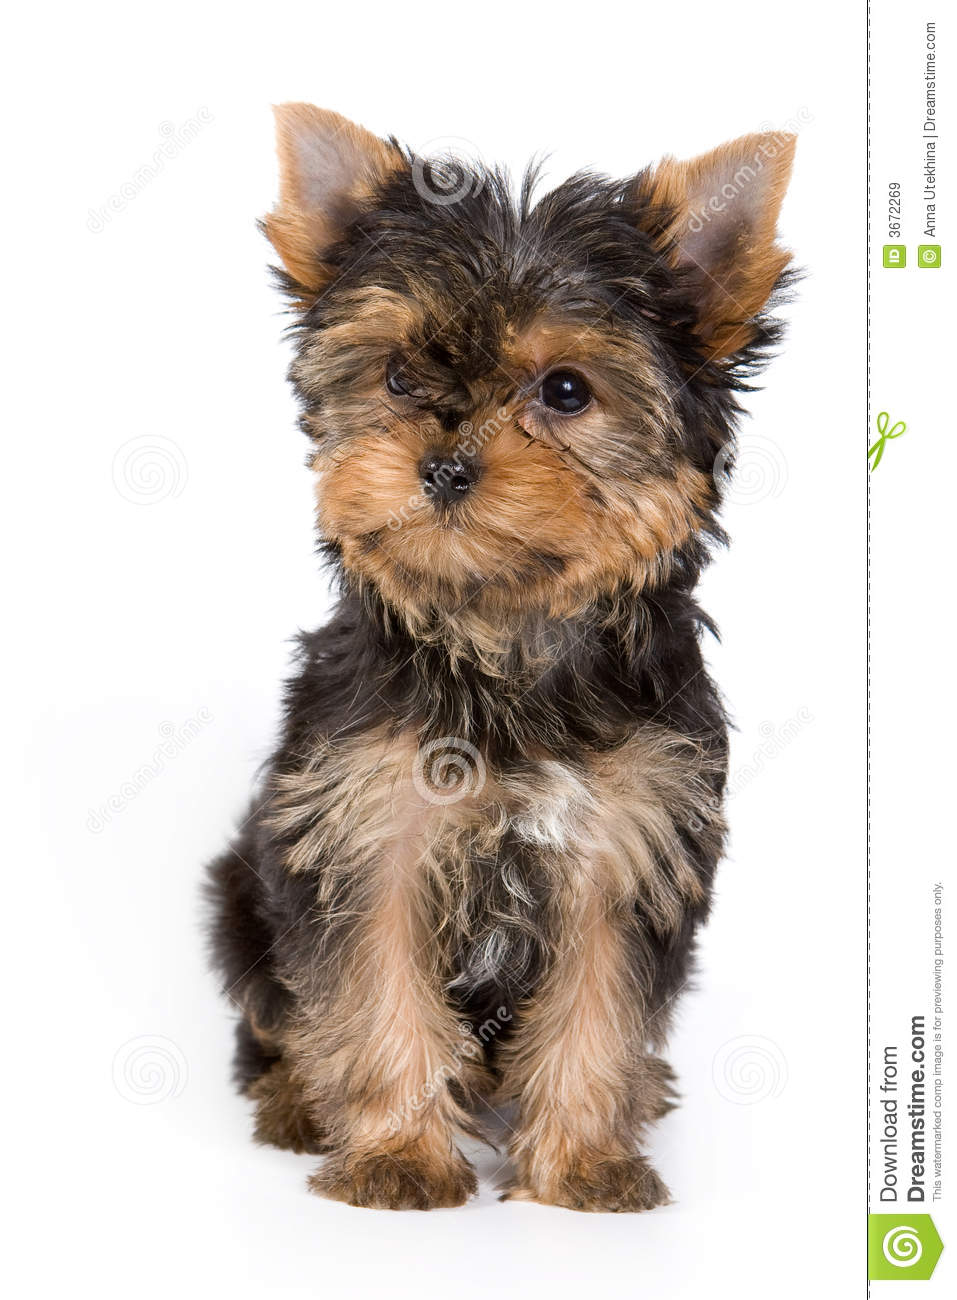 Cute Yorkshire Terrier Puppies Wallpaper 50 Very Cute Yorkshire Terrier Puppy Pictures And Photos